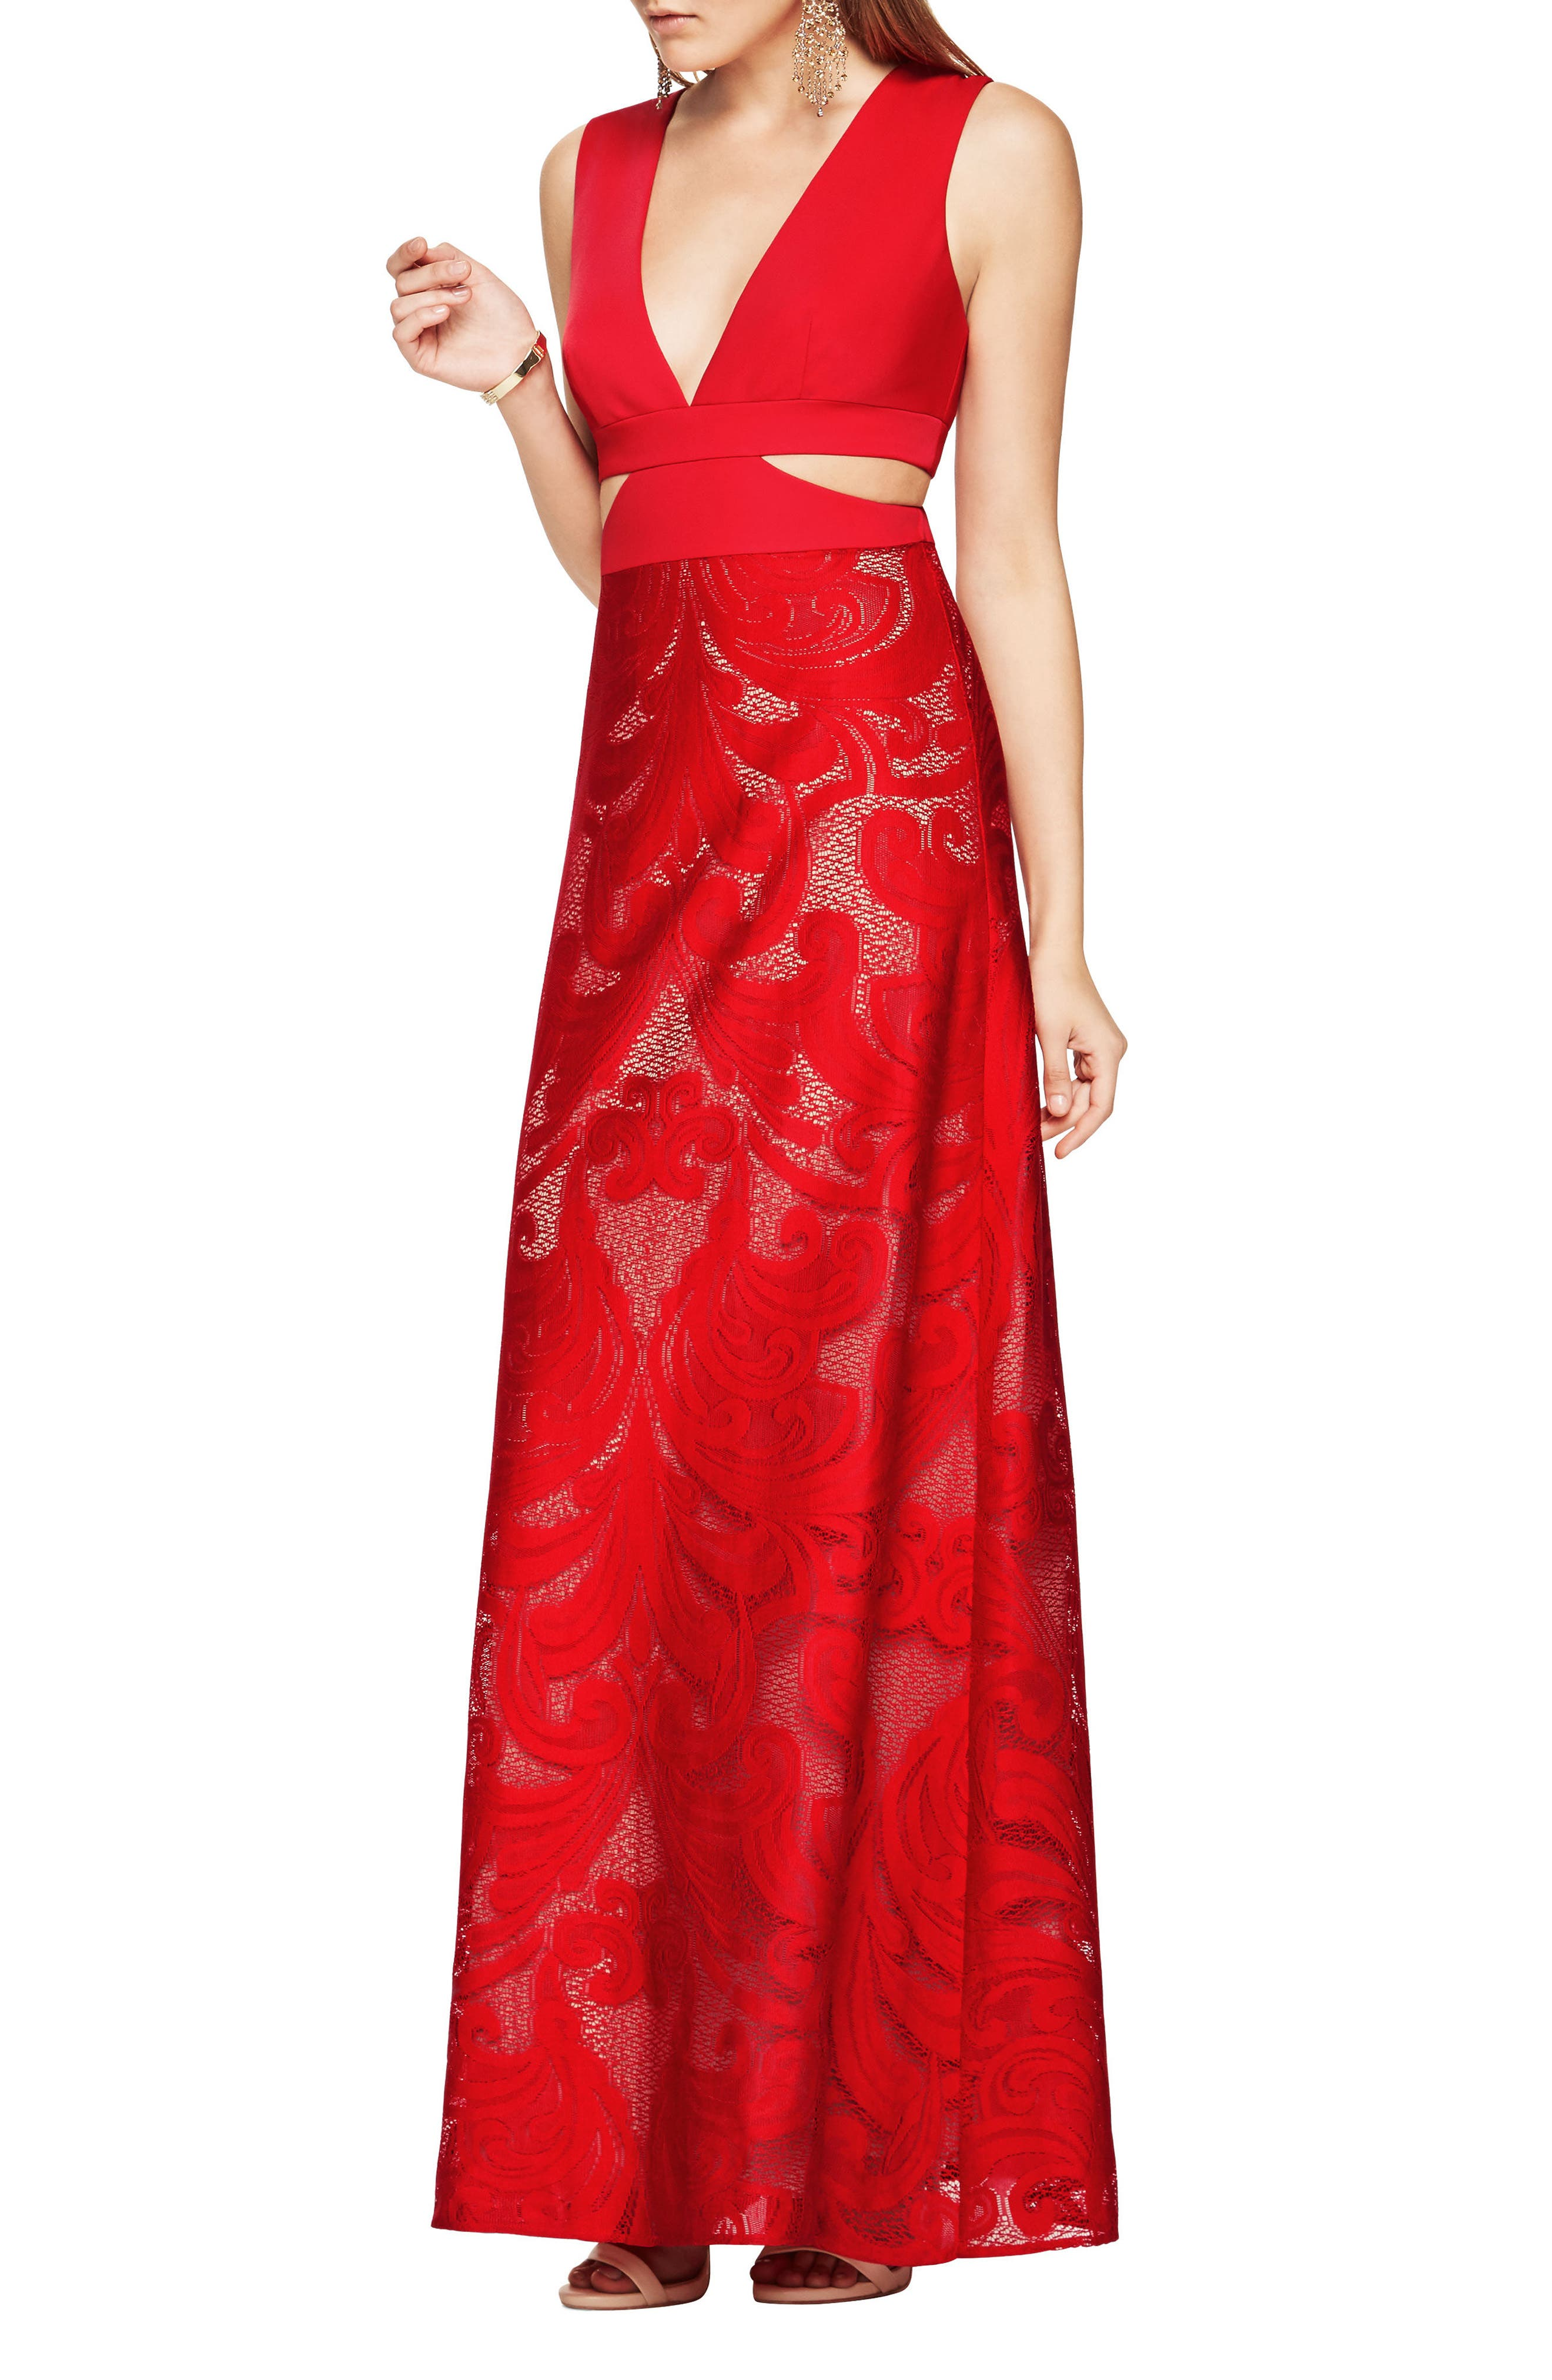 Alternate Image 1 Selected - BCBGMAXAZRIA Marilyne Gown